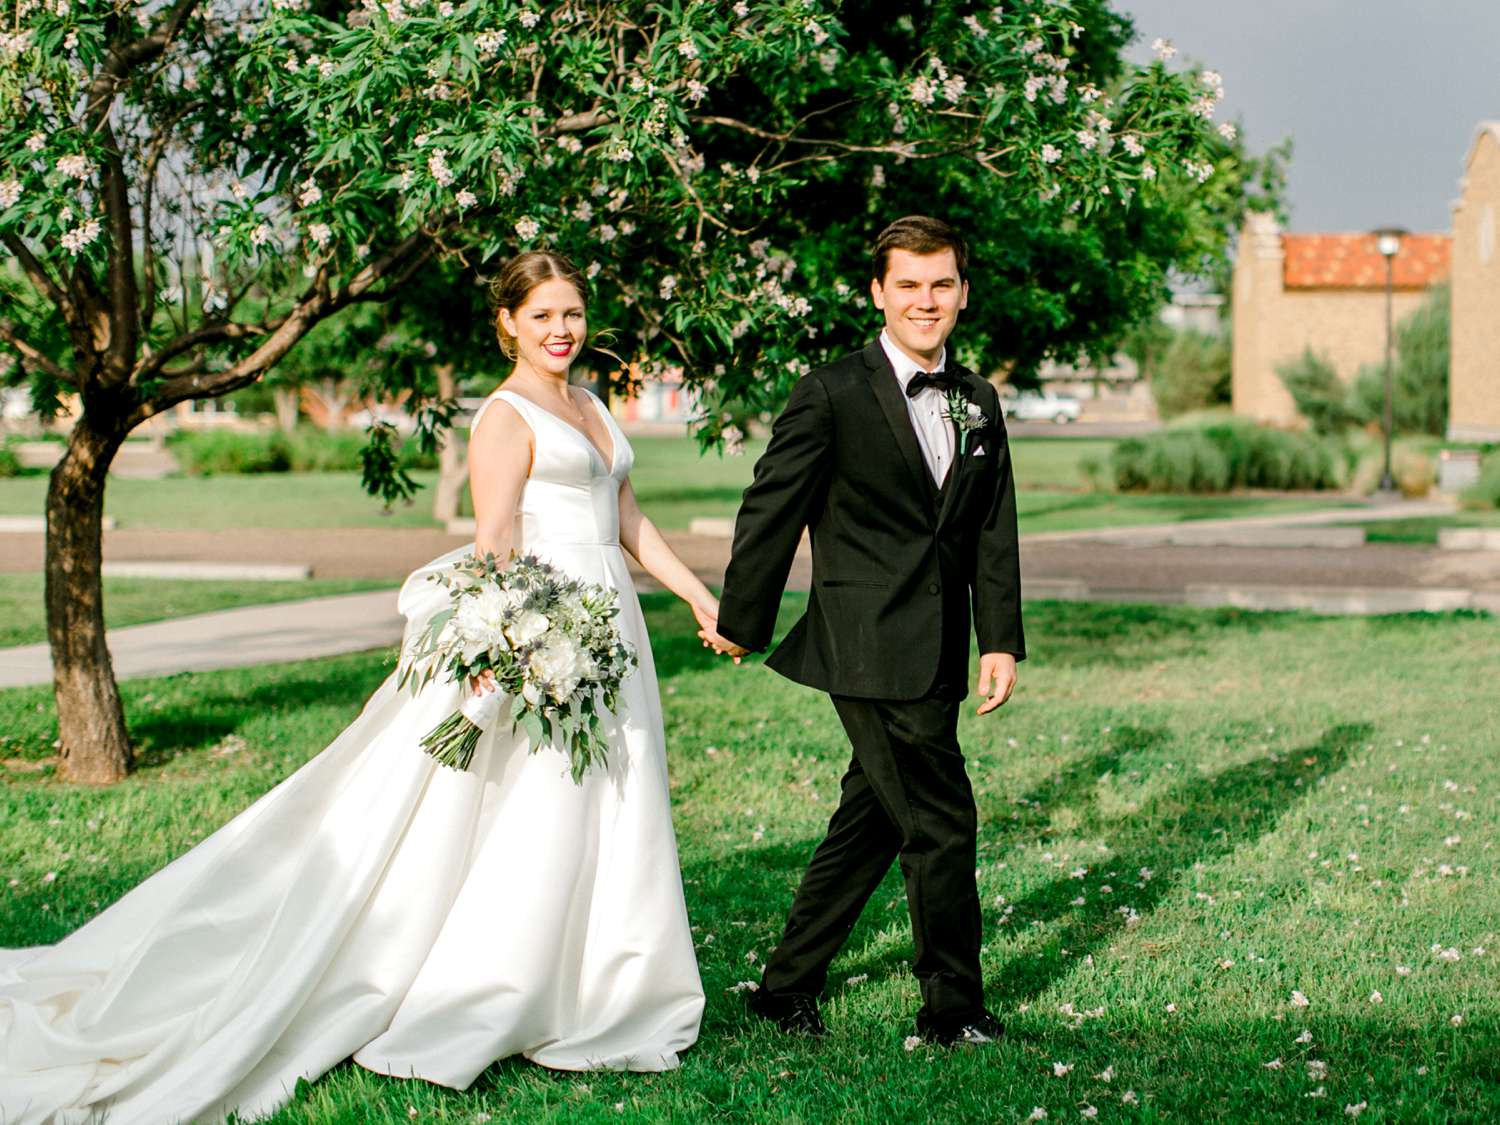 HANNAH+CRAIG+CHILDS+TEXAS+TECH+WEDDING+ALLEEJ+LUBBOCK+PHOTOGRAPHER_0112.jpg